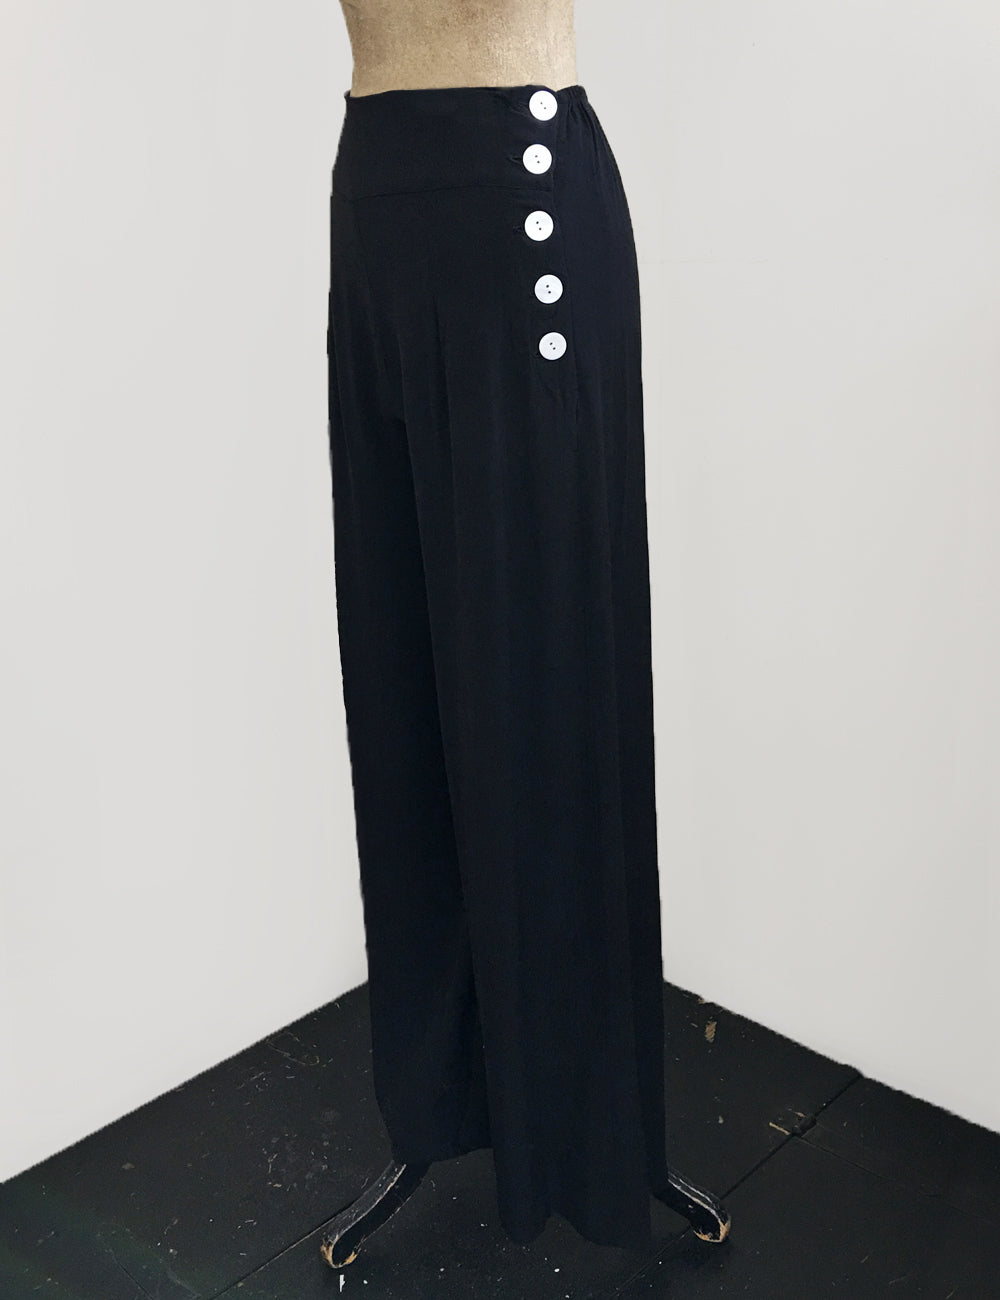 BACK IN STOCK!  Solid Black Retro 1940s Style High Waisted Palazzo Pants